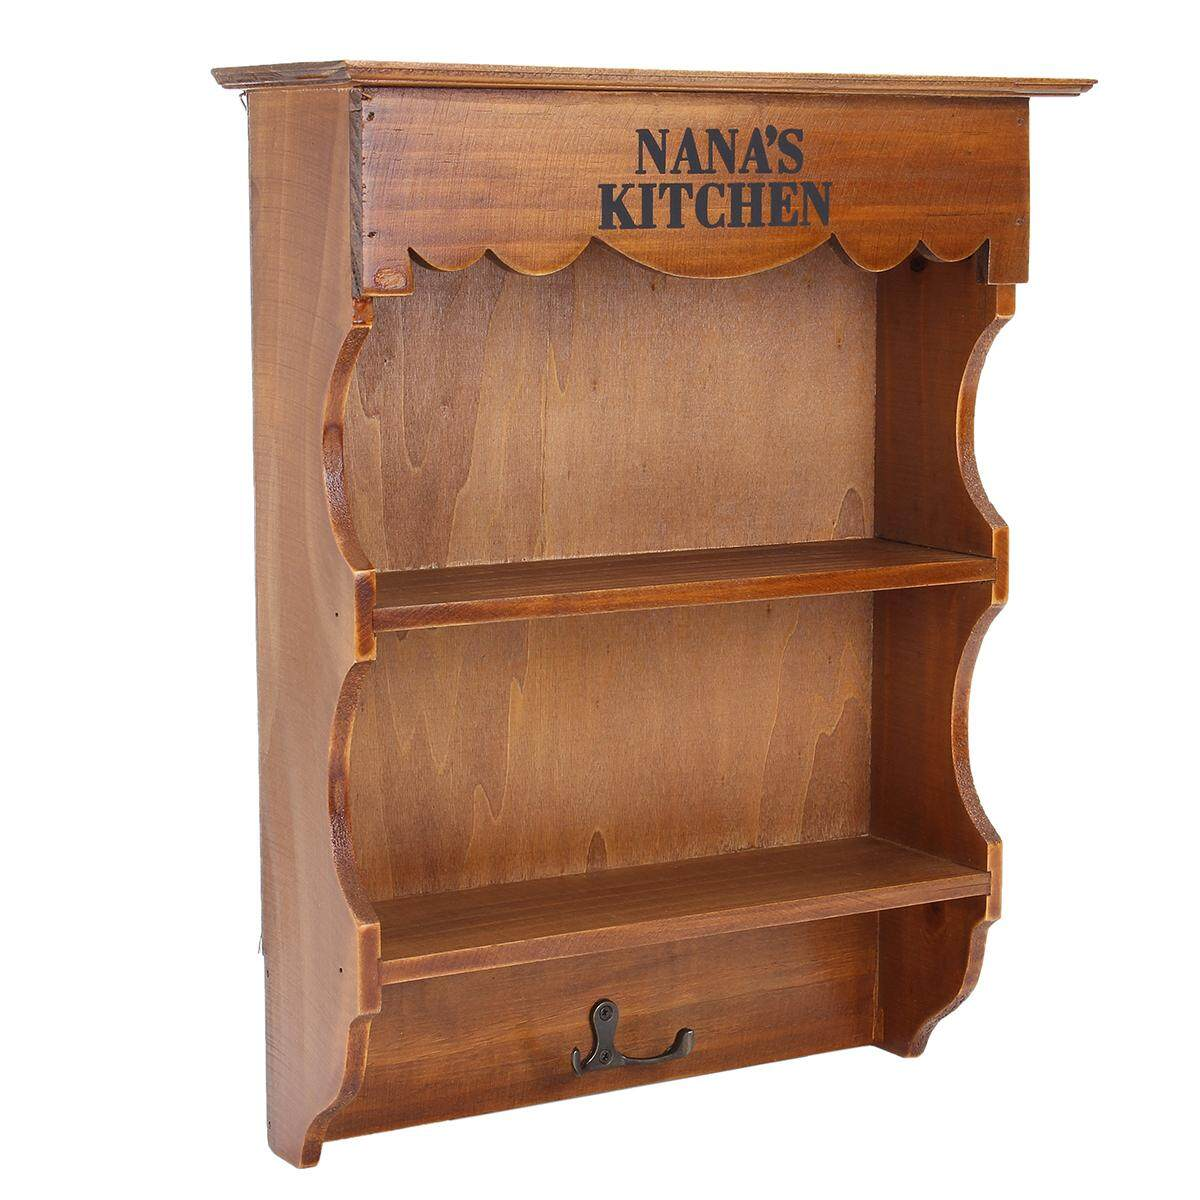 Rustic Wood Dresser Wall Storage Shelf Vintage NANAS Kitchen Shelving Hook Rack